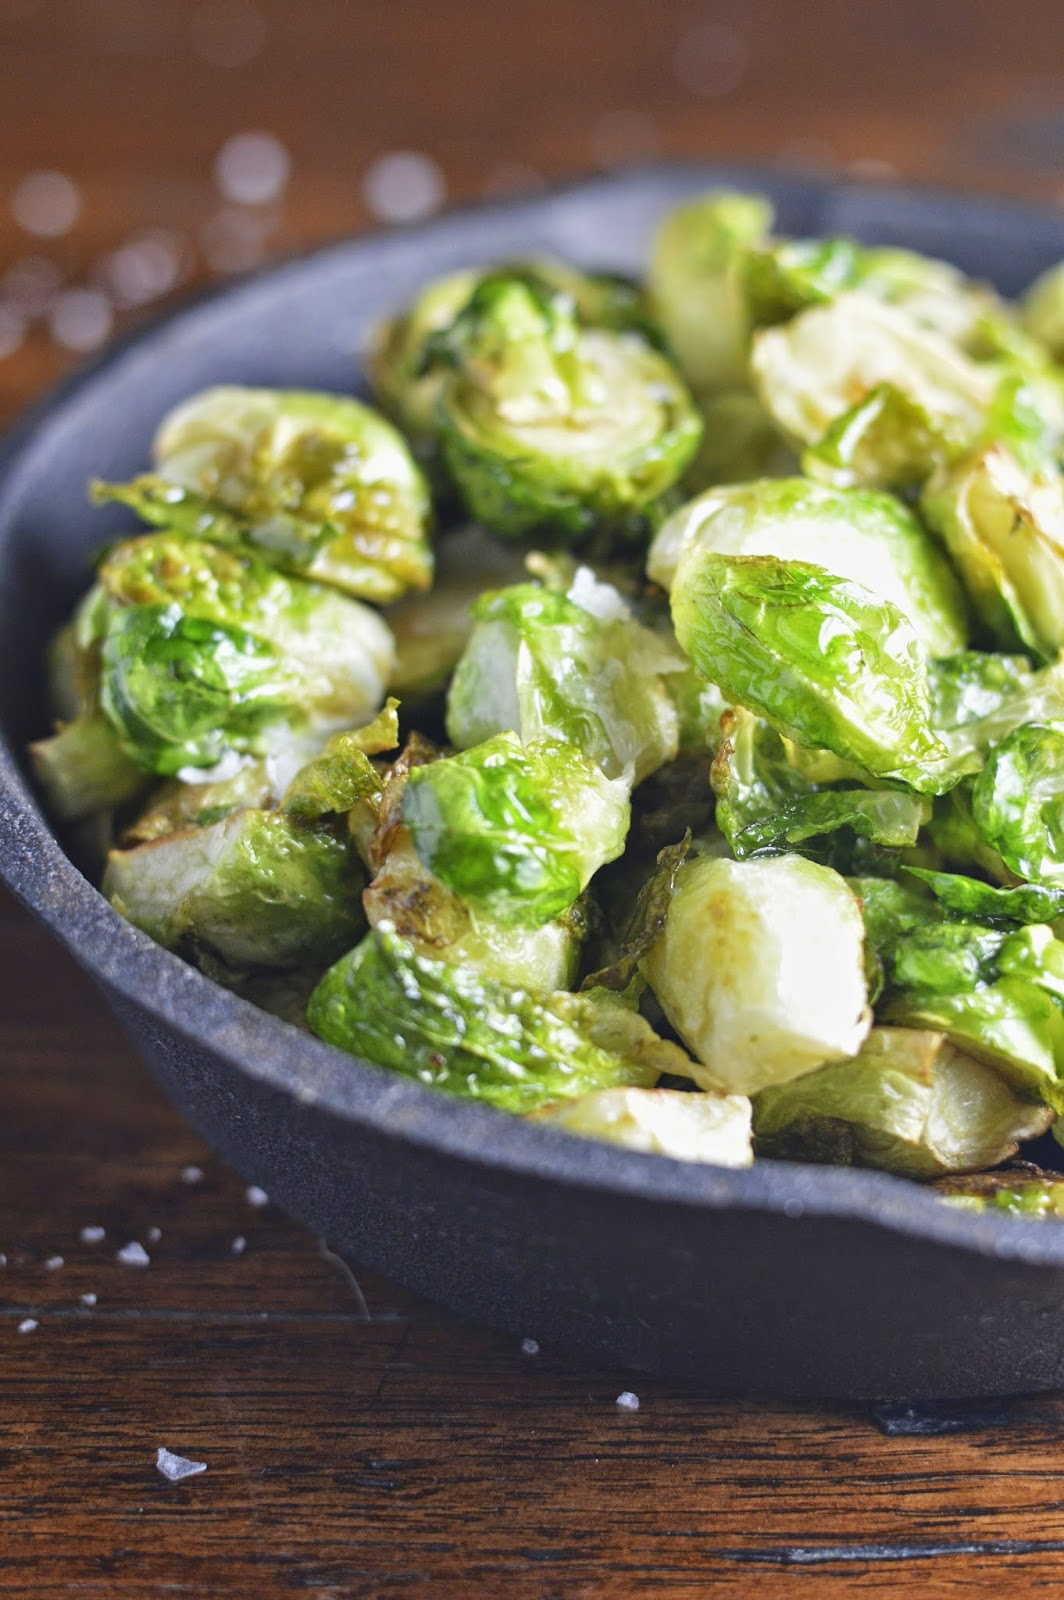 Brussels sprouts are flashed fried and topped with chunky sea salt